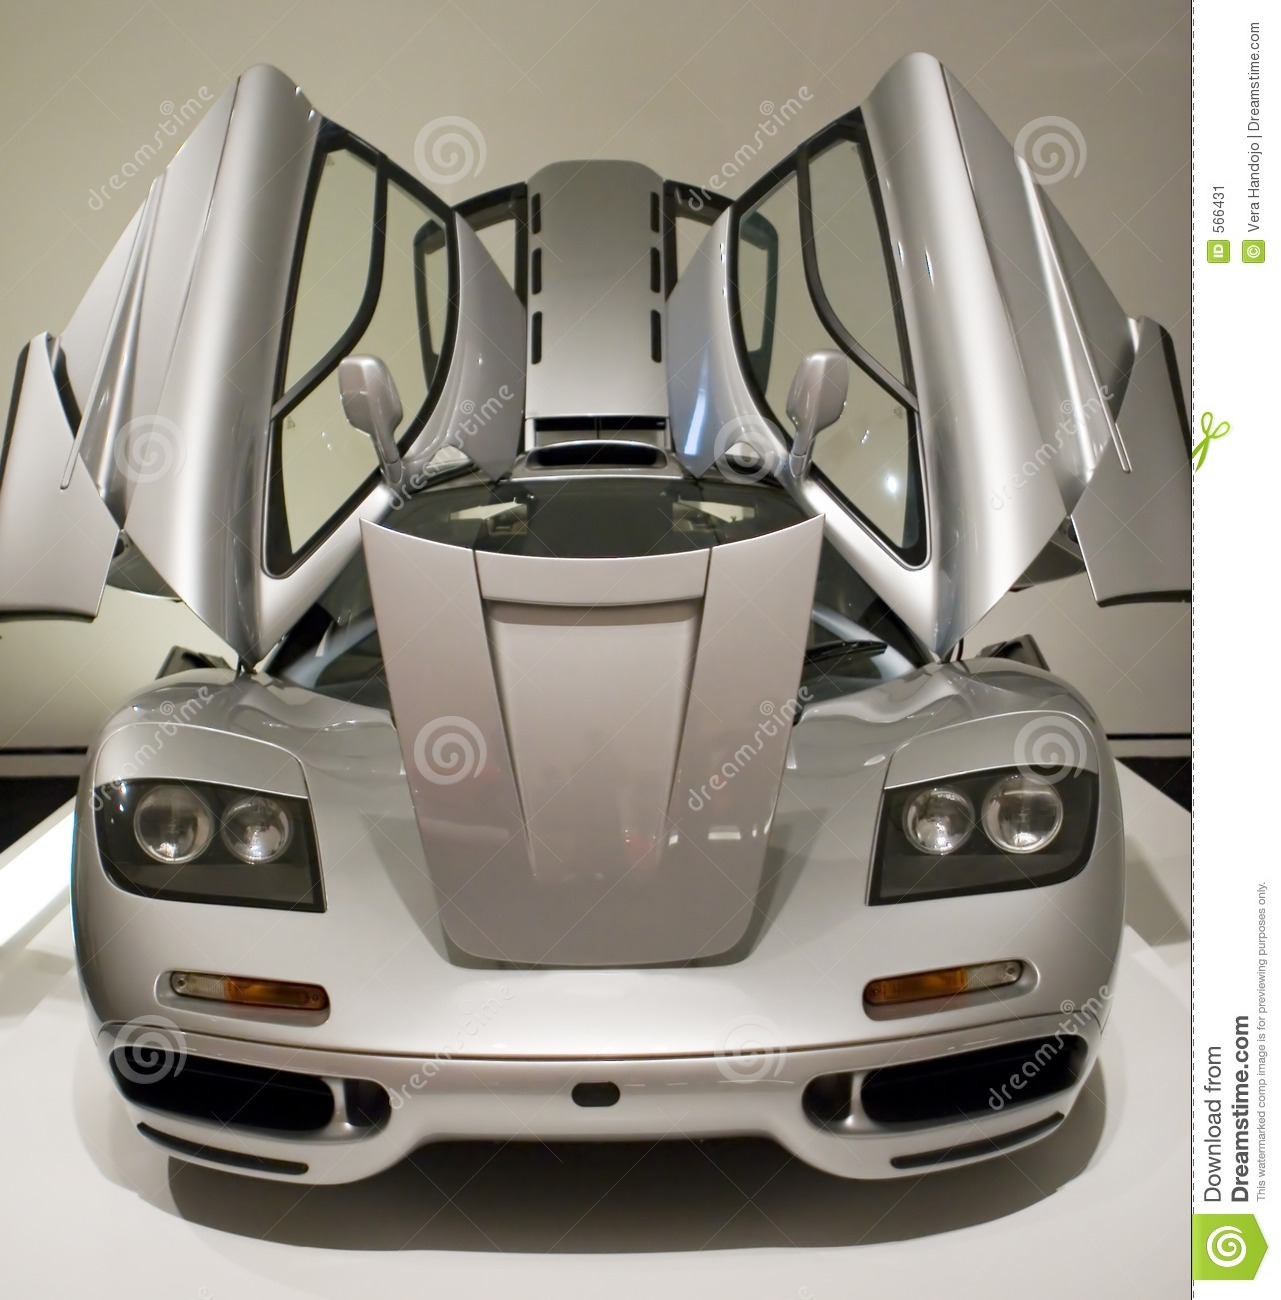 Sports Car With Doors Open Stock Image. Image Of